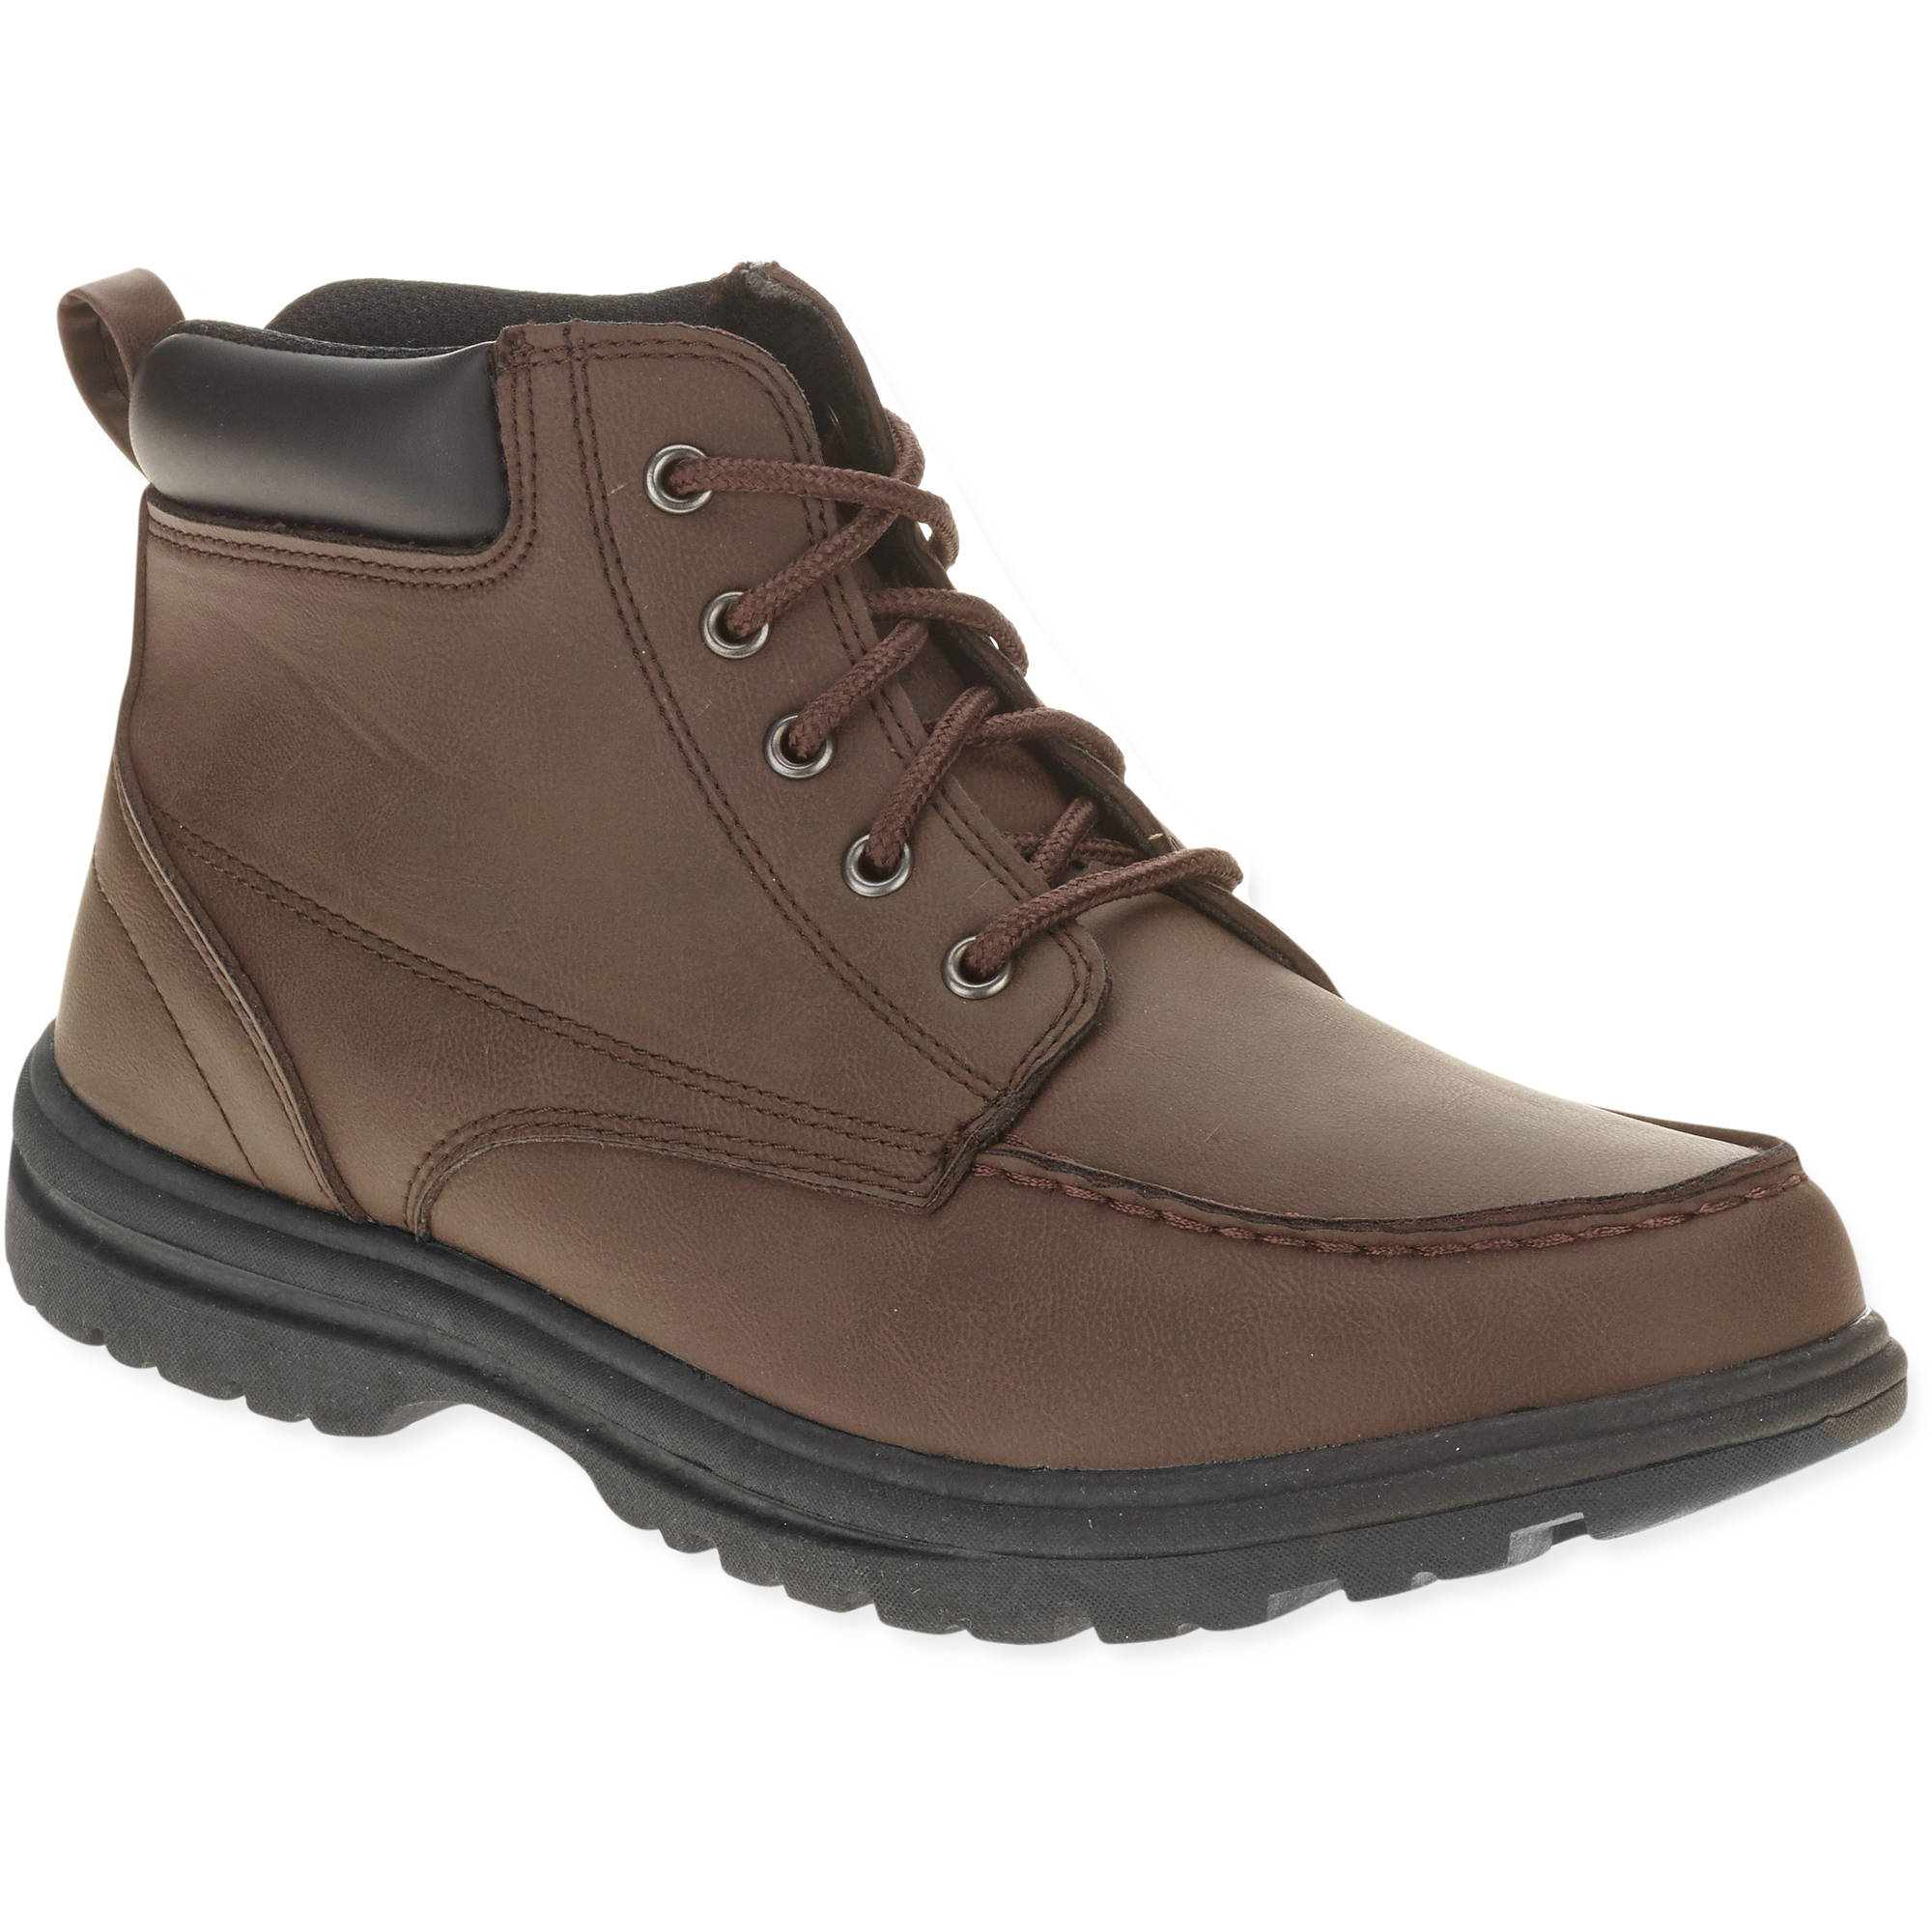 Cheap Combat Boots For Women wFPnWEem